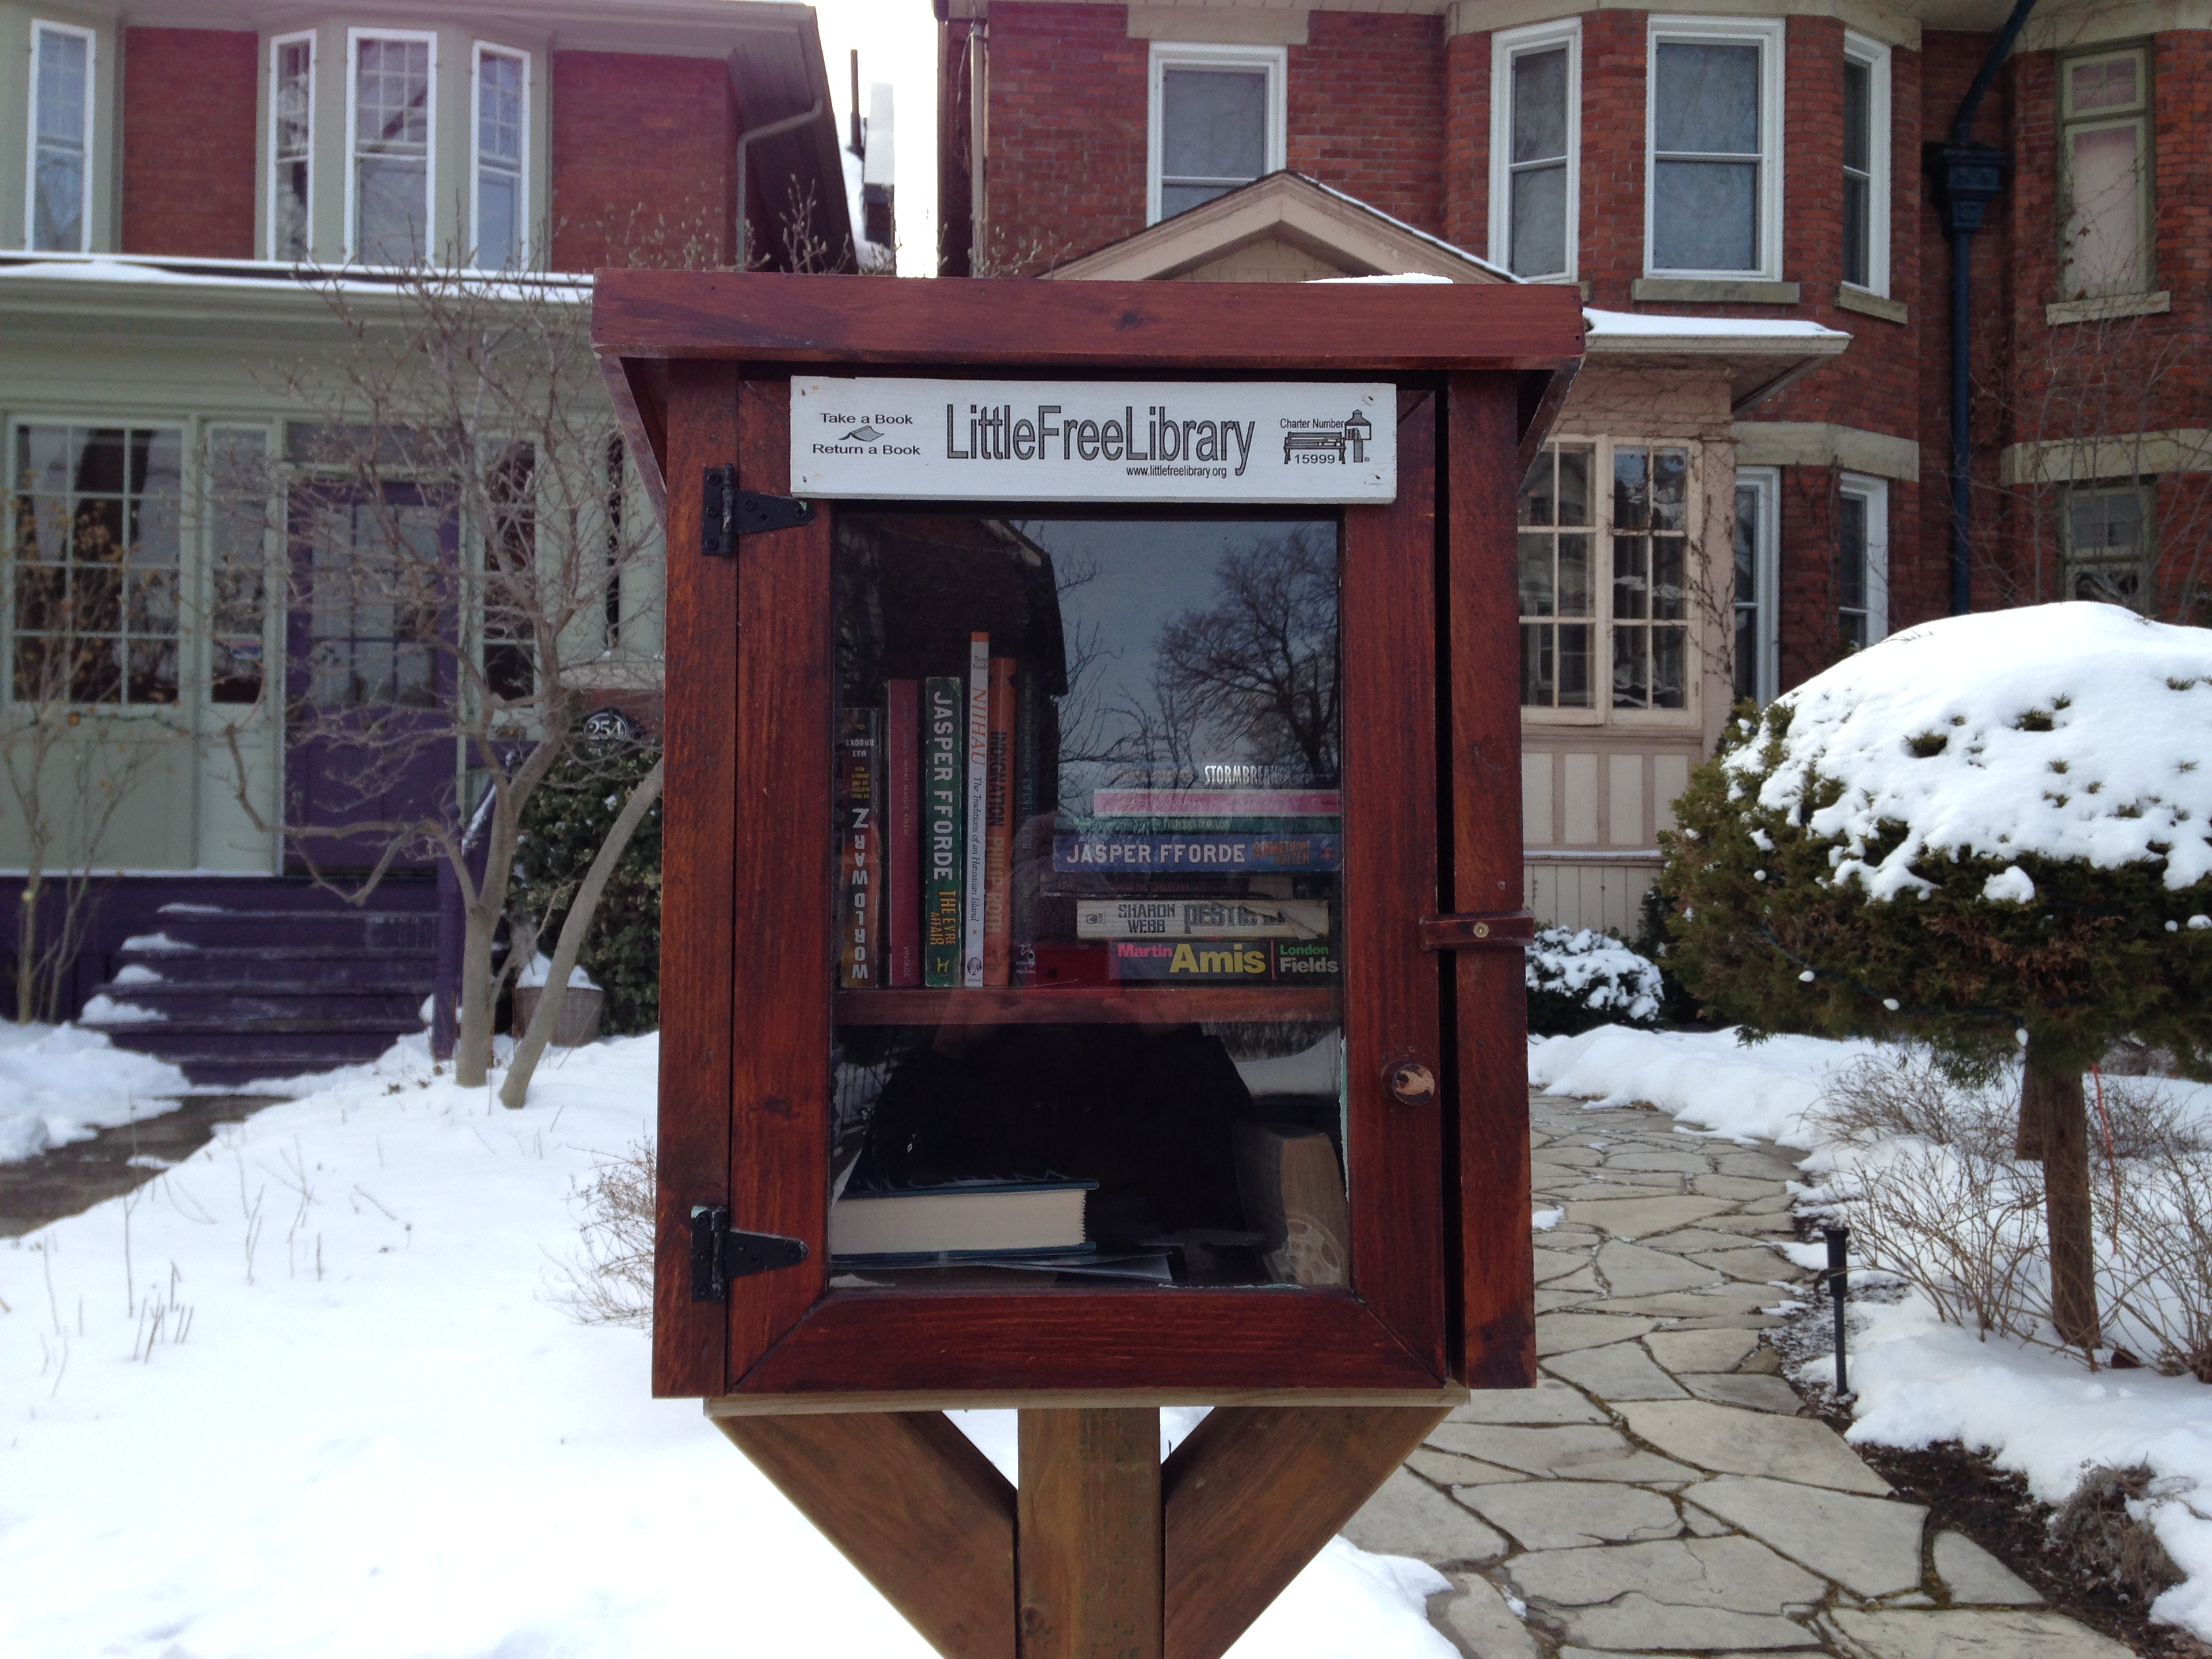 The Little Free Library book box on Rusholme Street, located next door to the Open Field Collective's Street Project. CITYNEWS/Patricia D'Cunha.